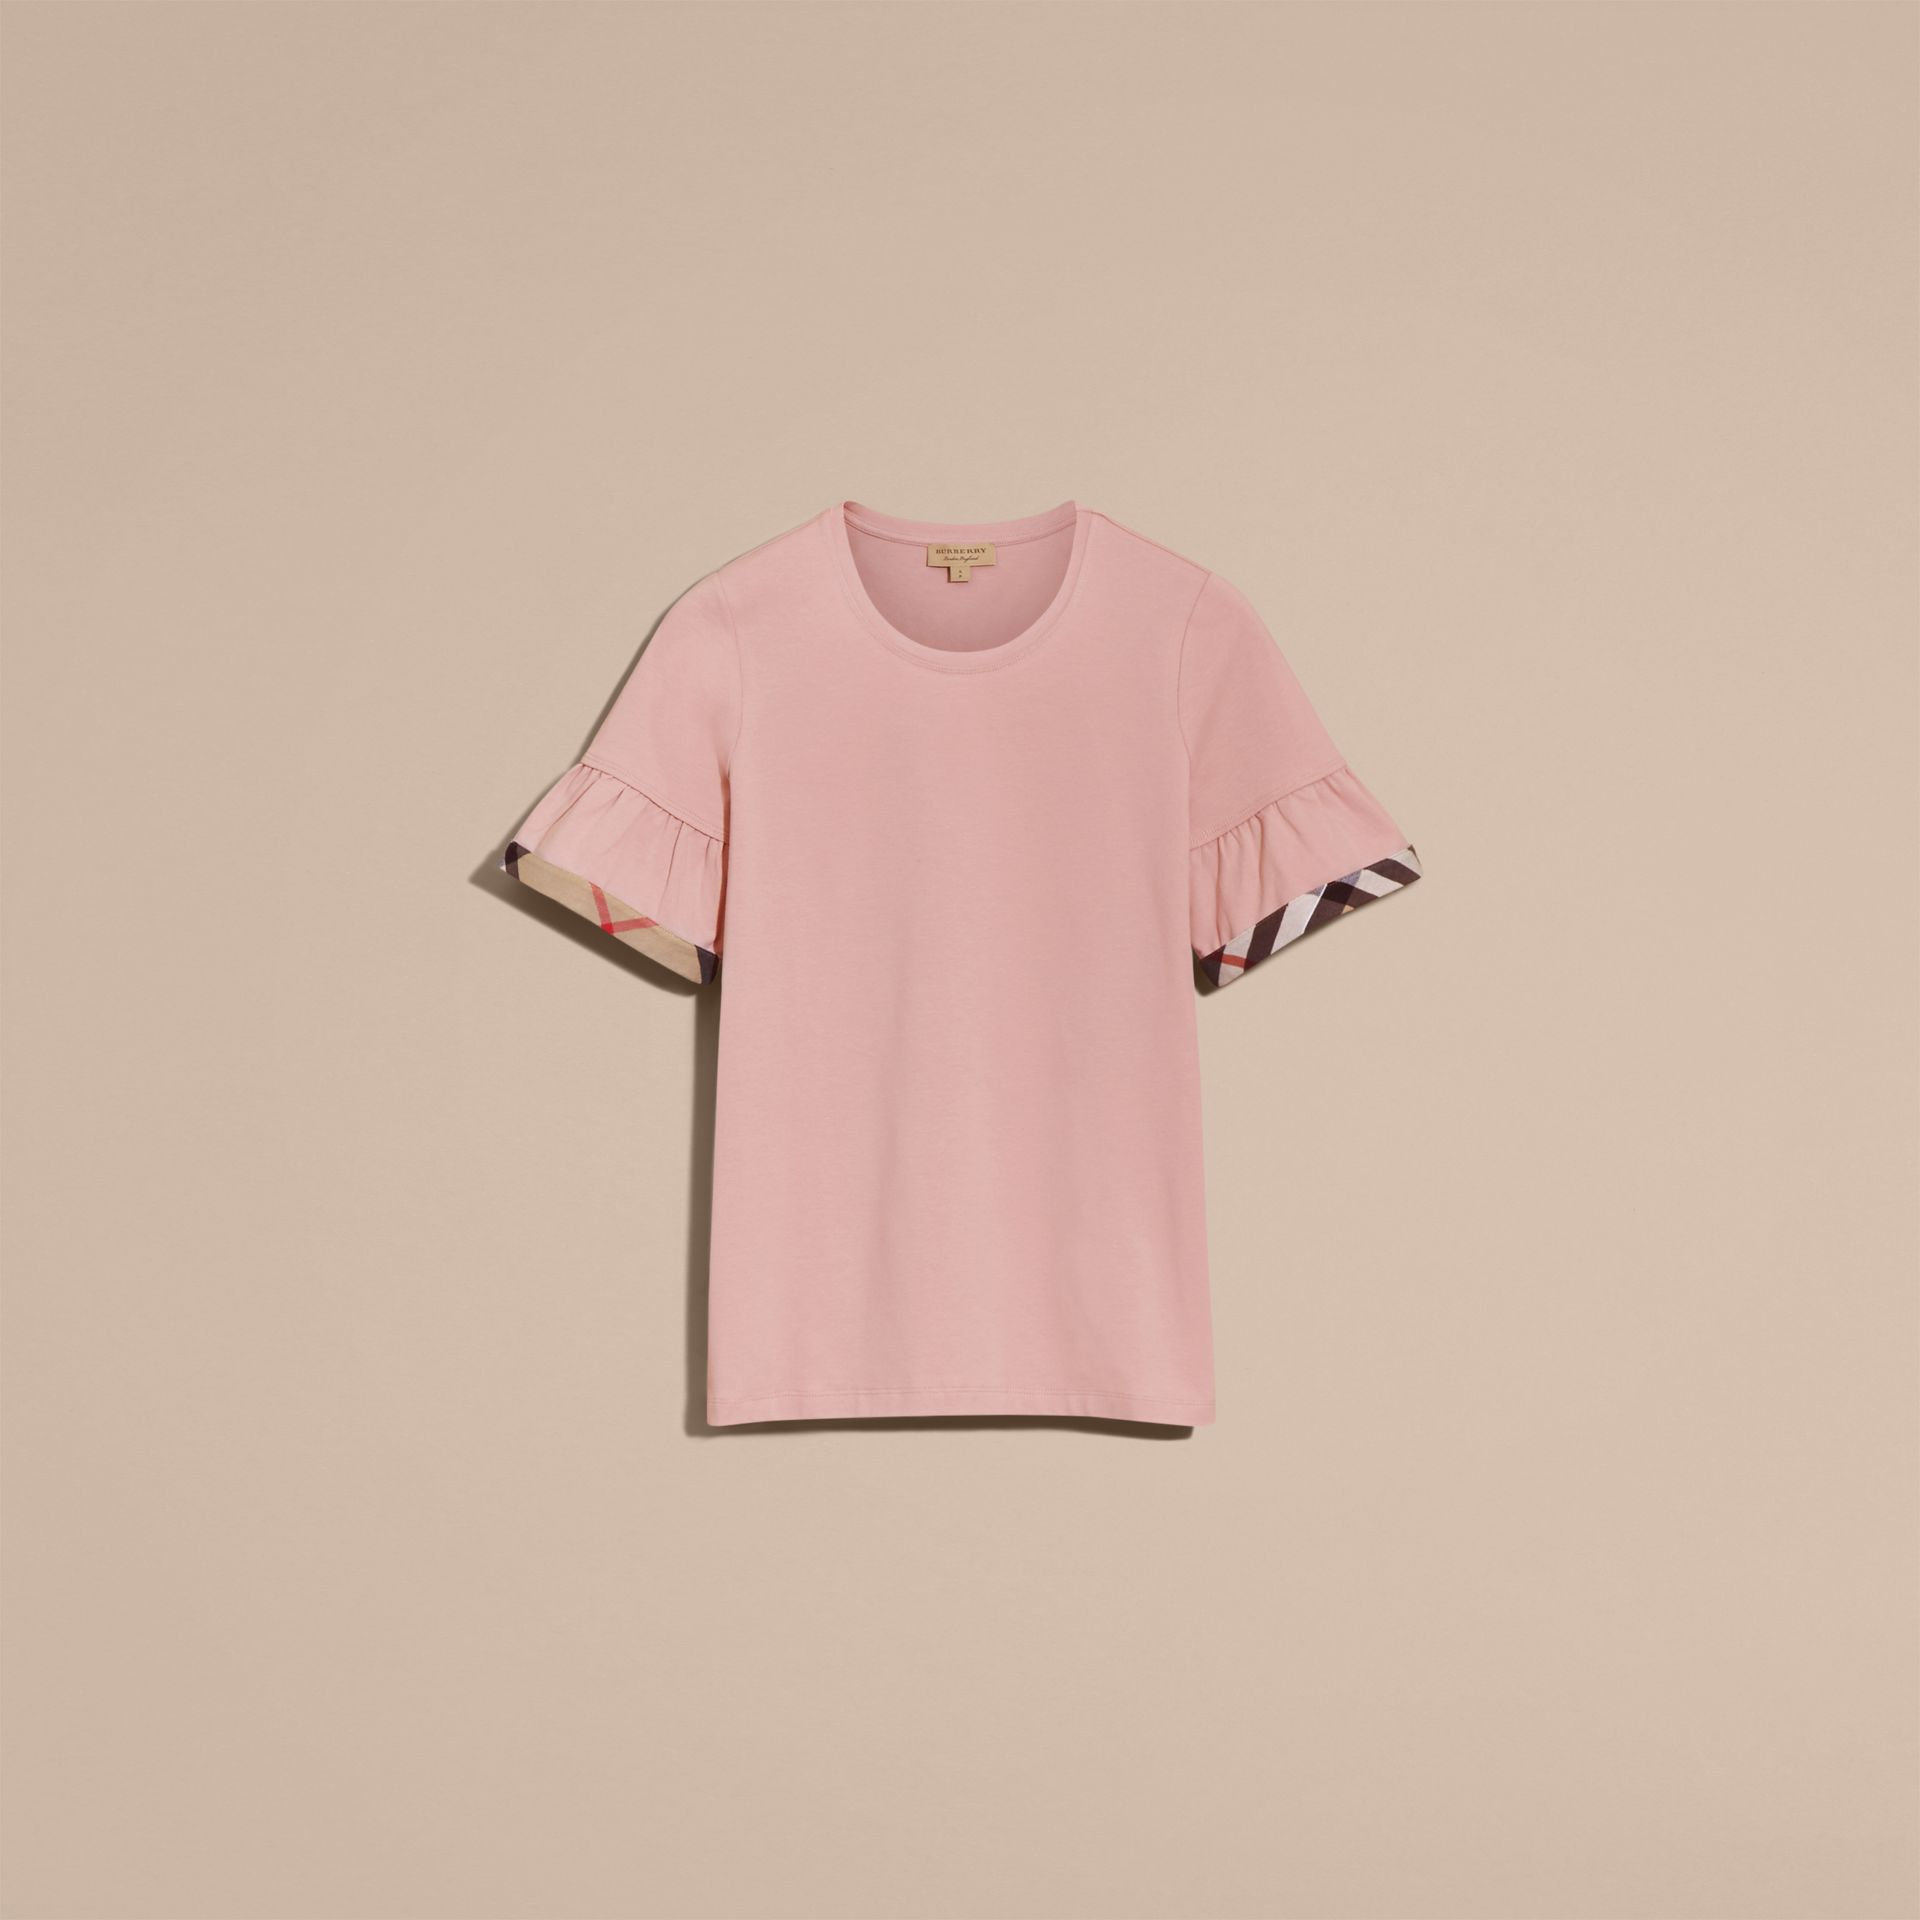 Ash rose Stretch Cotton T-shirt with Check Trim Ruffles Ash Rose - gallery image 4